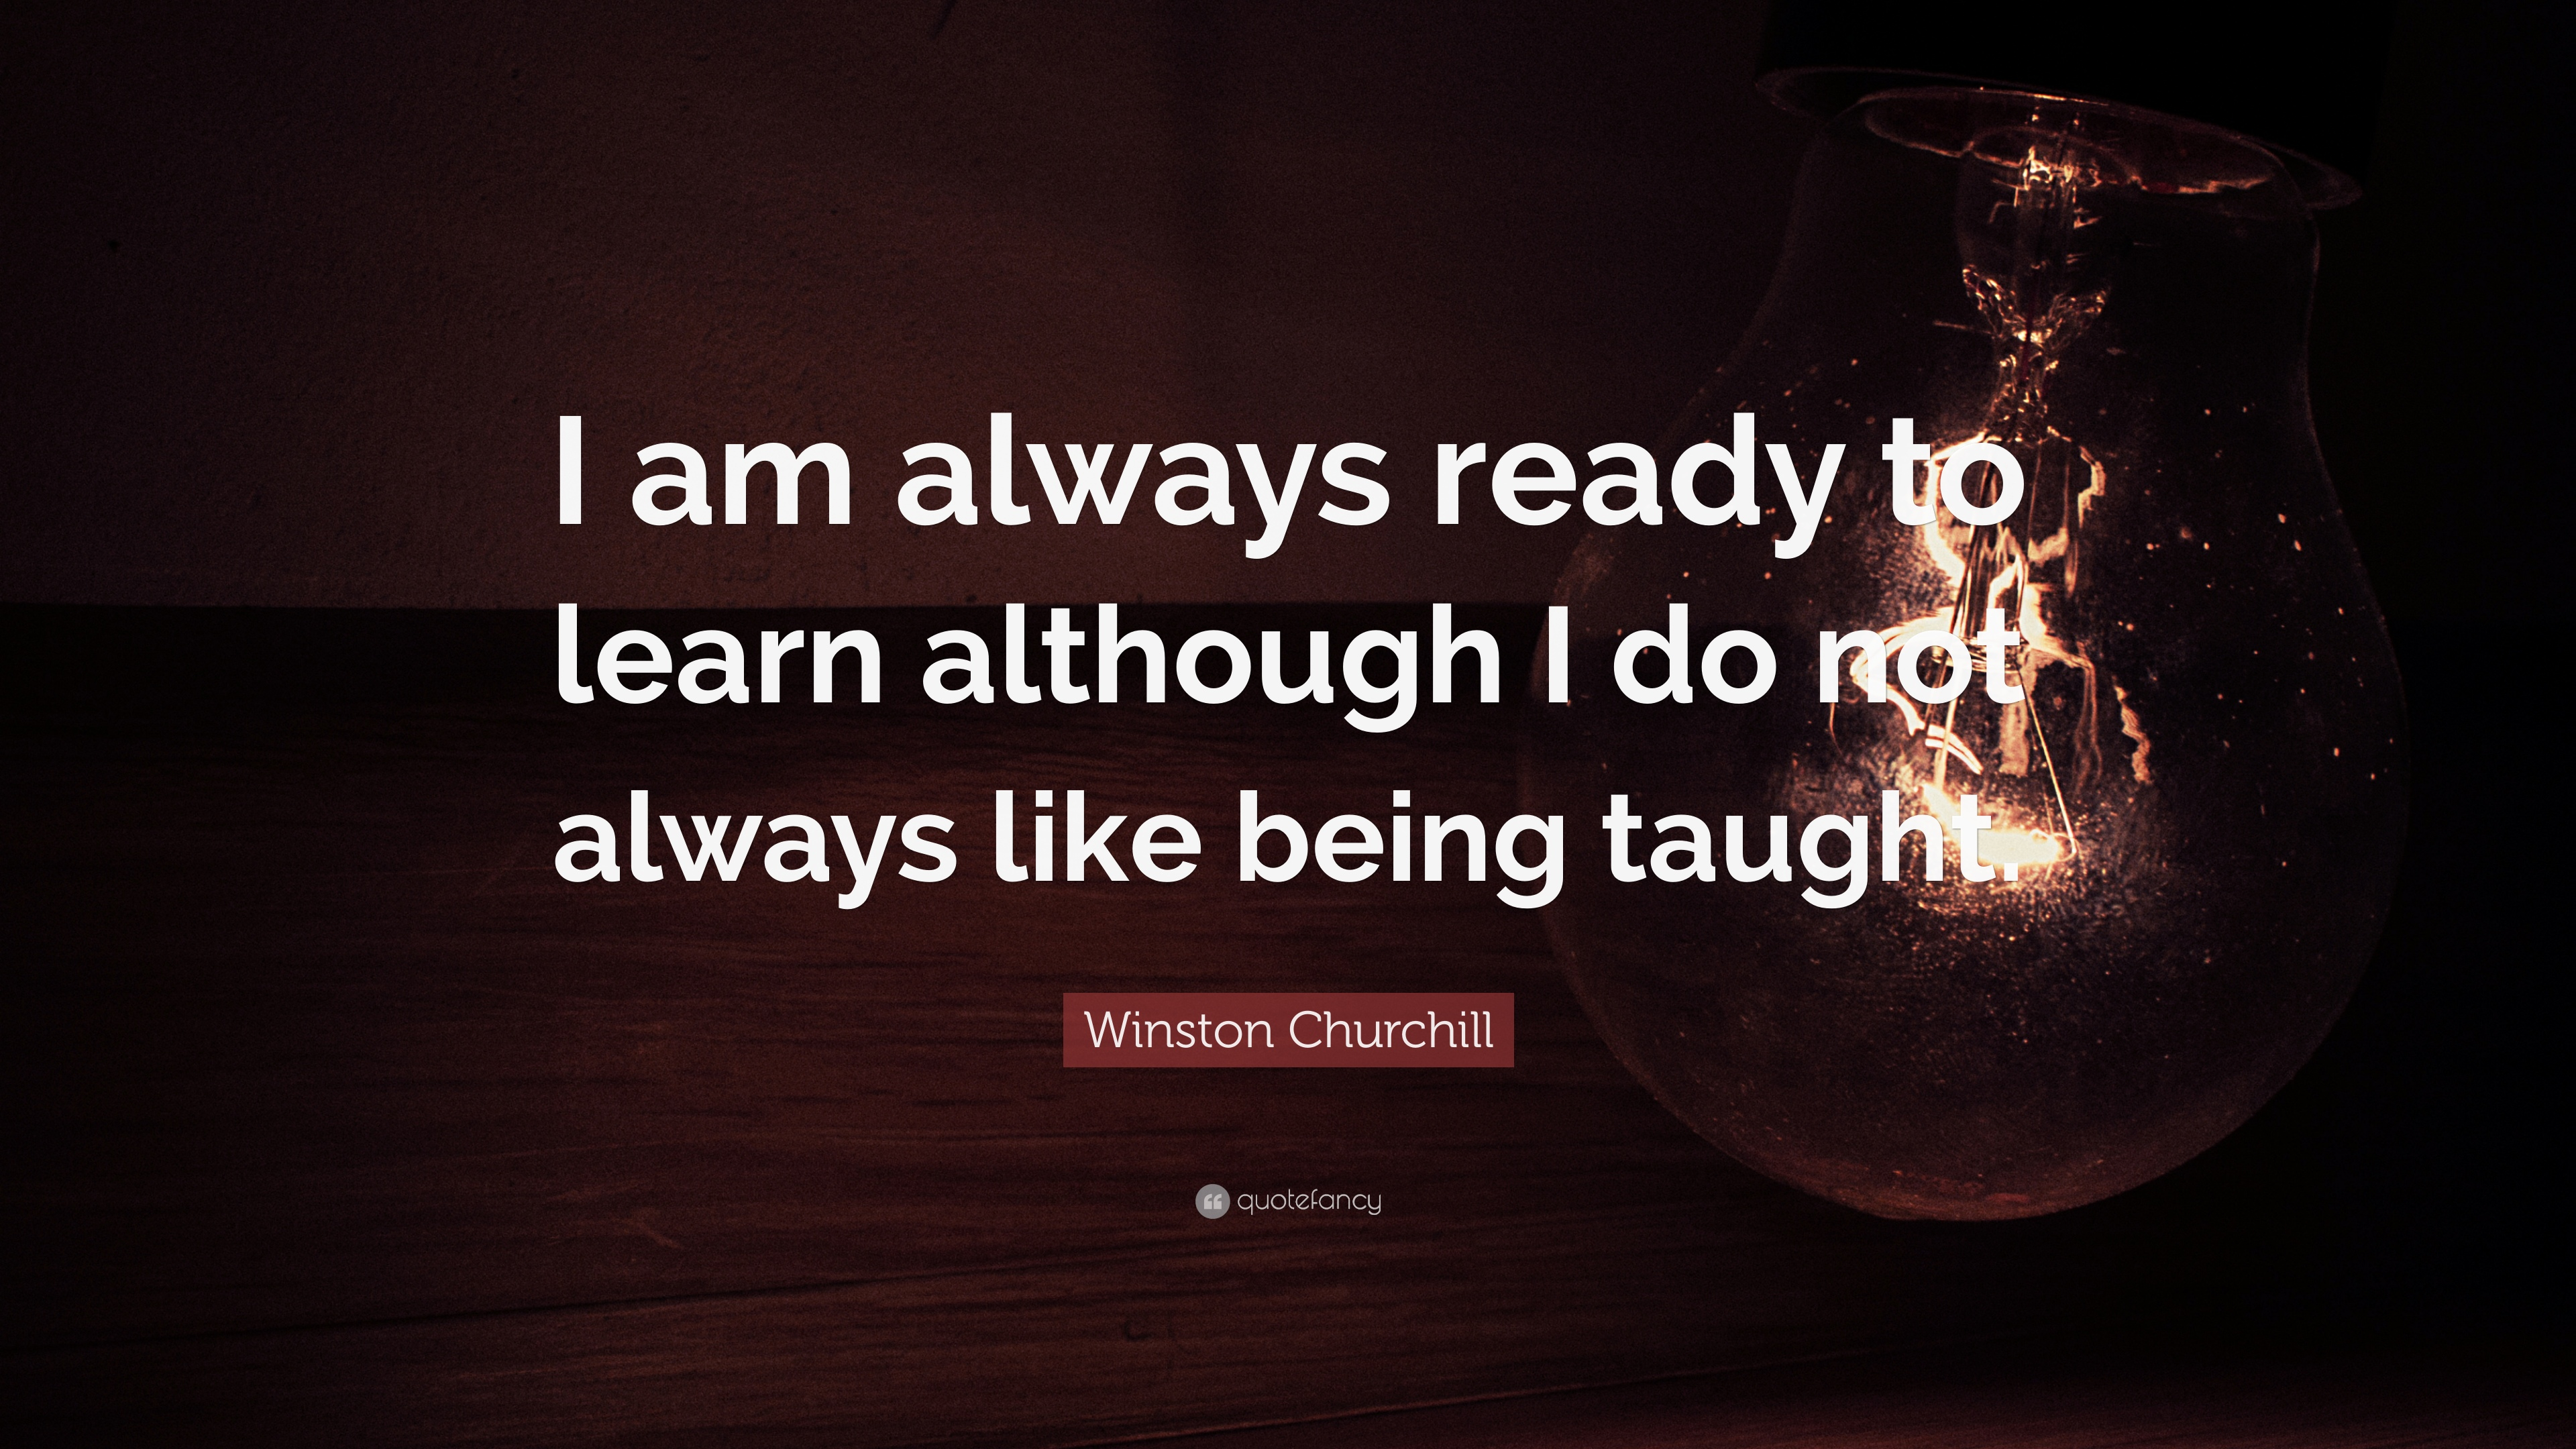 I am always ready to learn by Winston Churchill